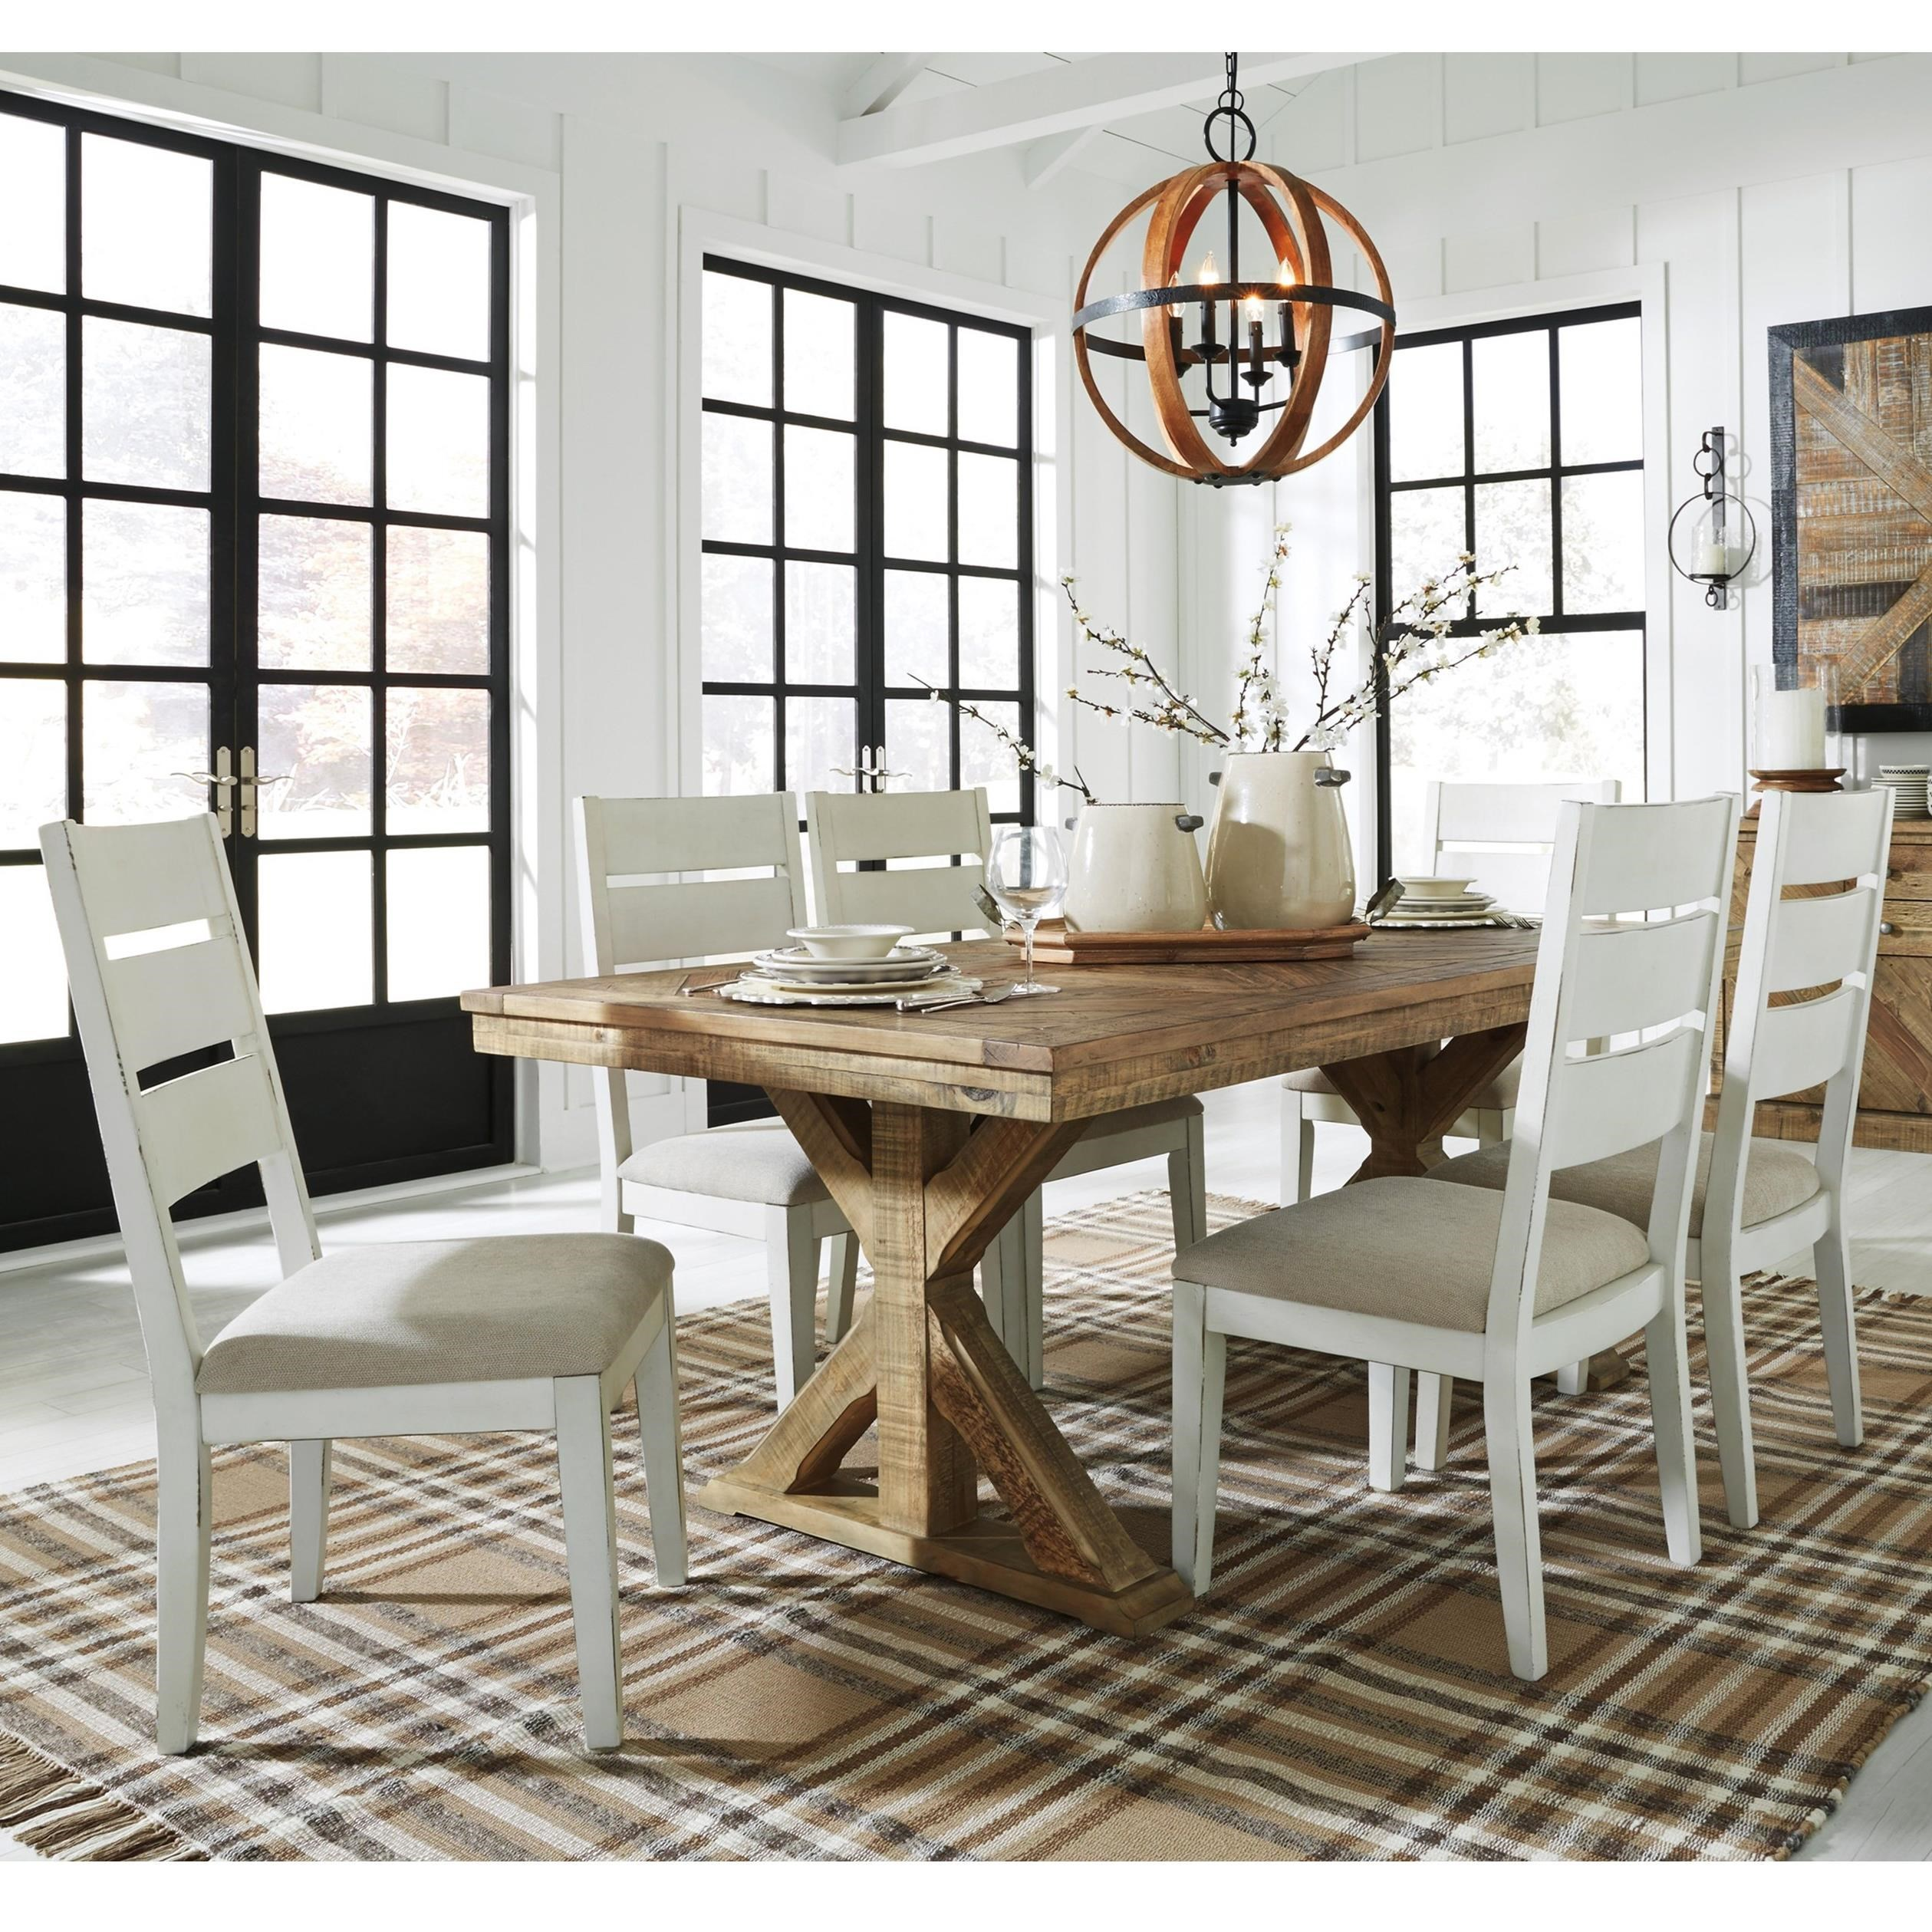 Grindleburg Dining Room Table Round: Signature Design By Ashley Grindleburg 7 Piece Rectangular